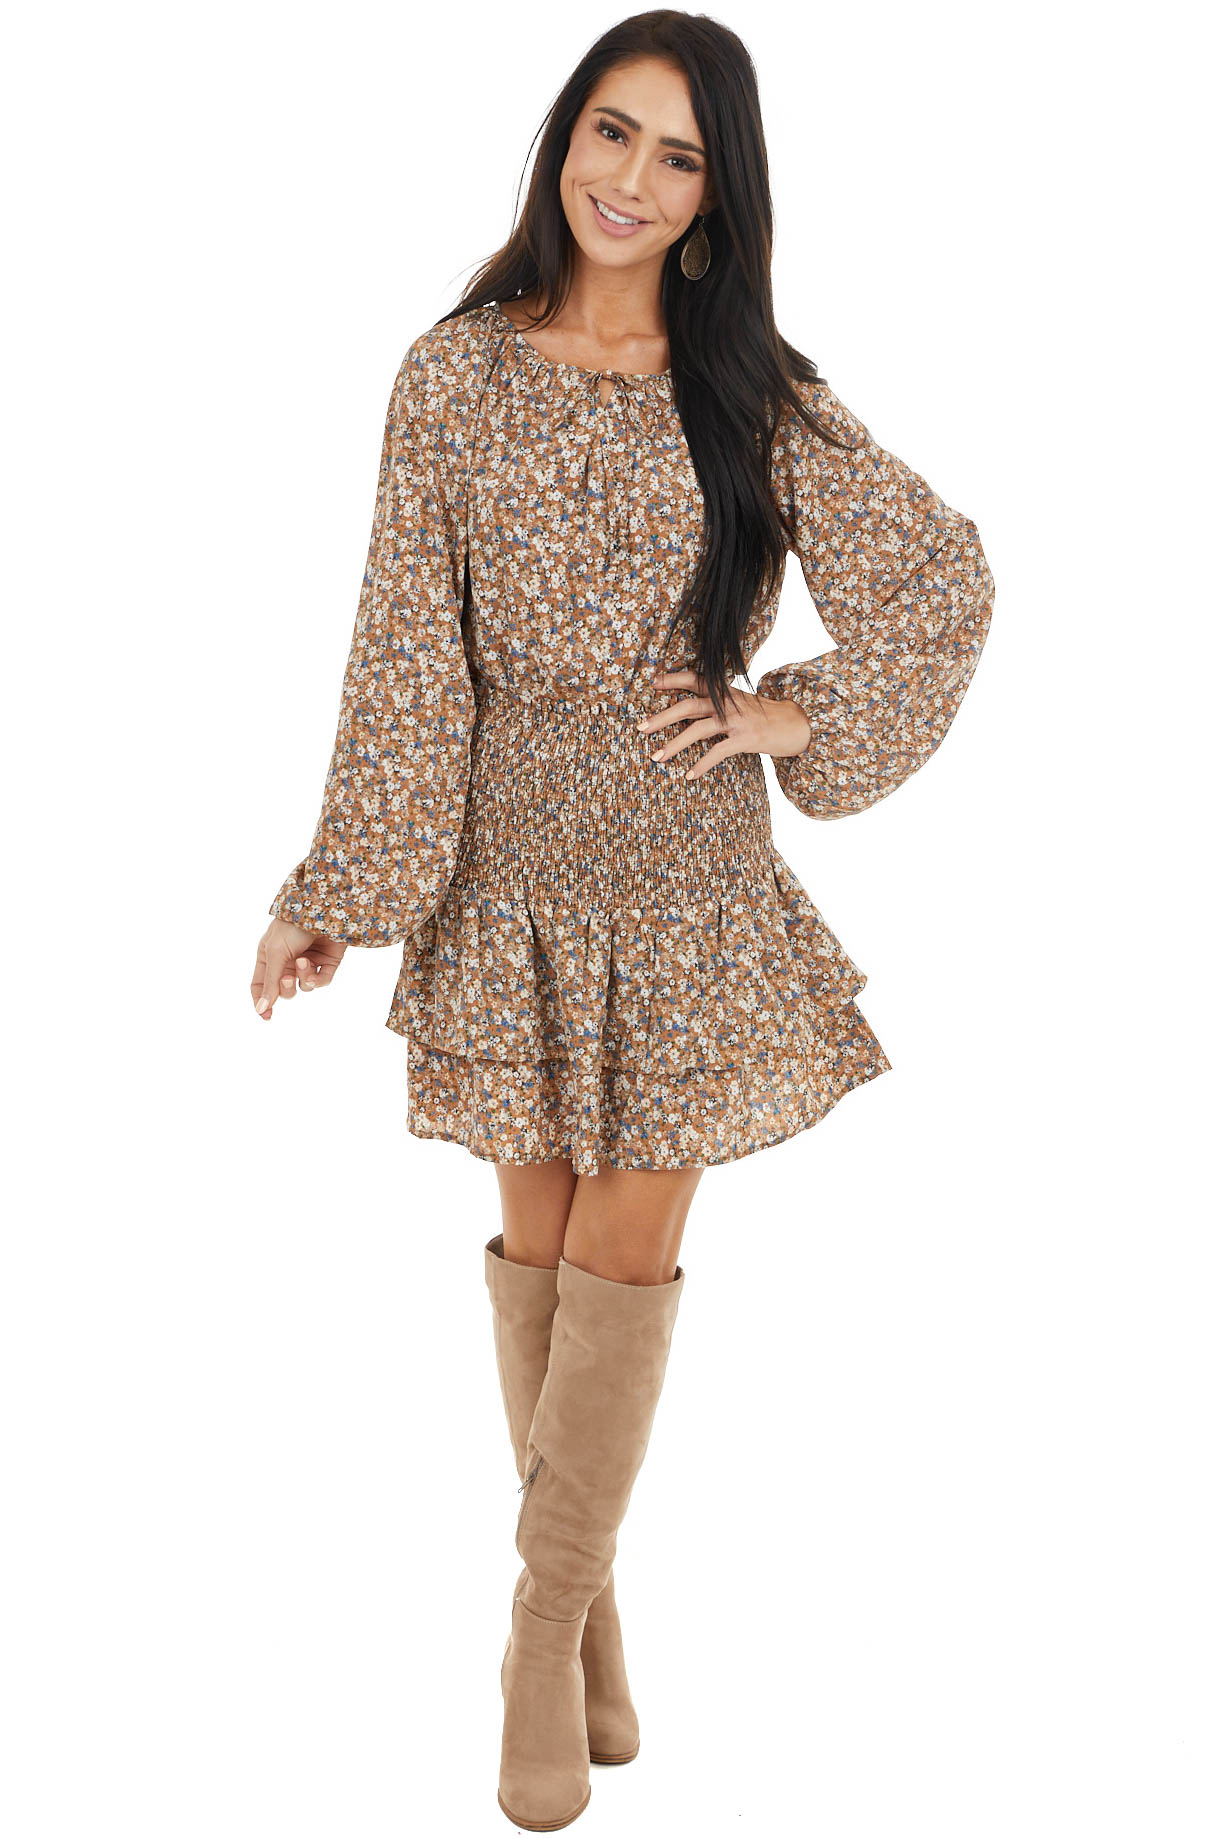 Cognac Floral Long Sleeve Top and Smocked Tiered Skirt Set